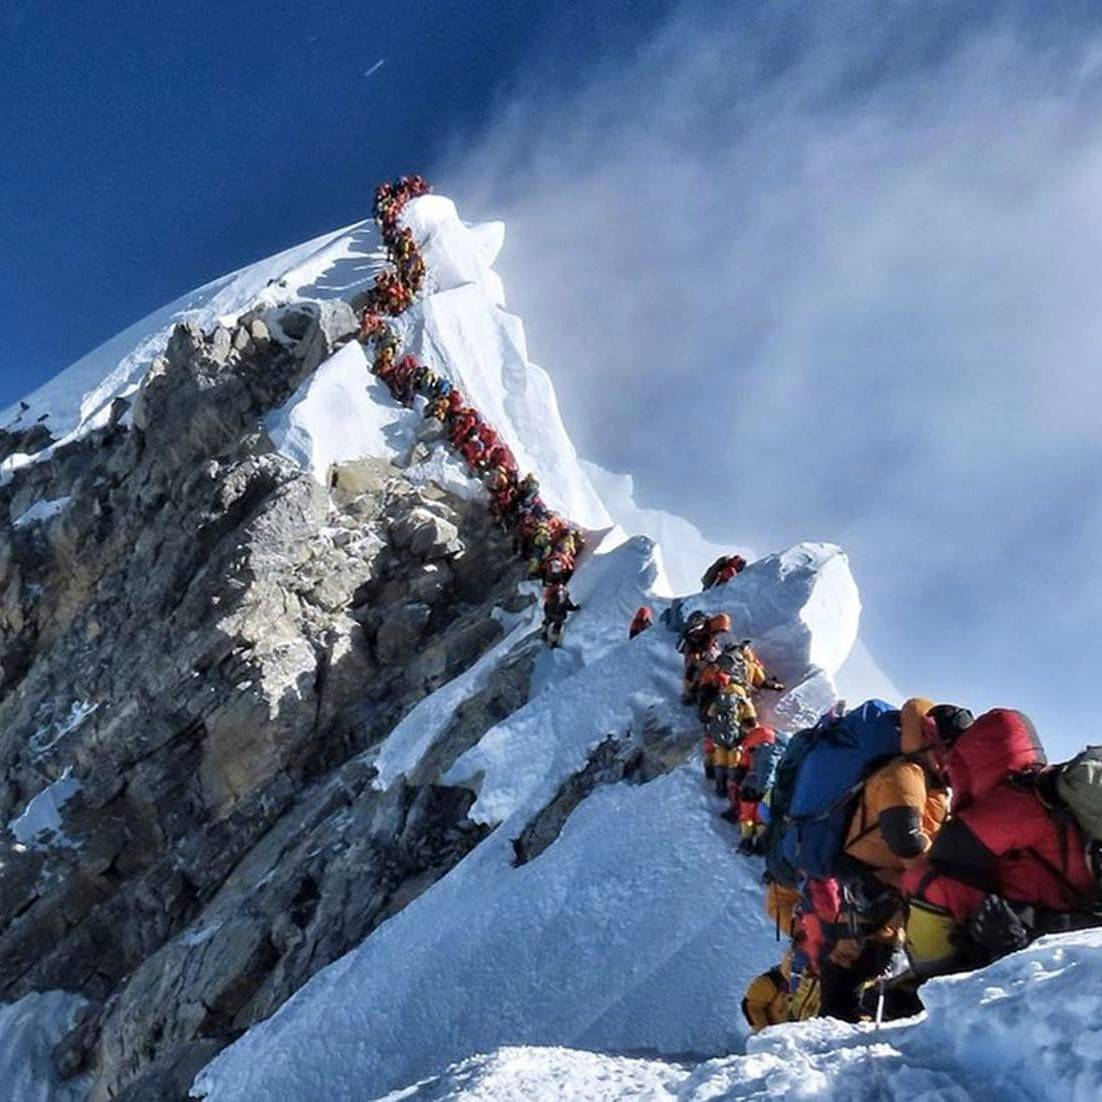 A dangerously long queue of climbers at the summit of Mount Everest